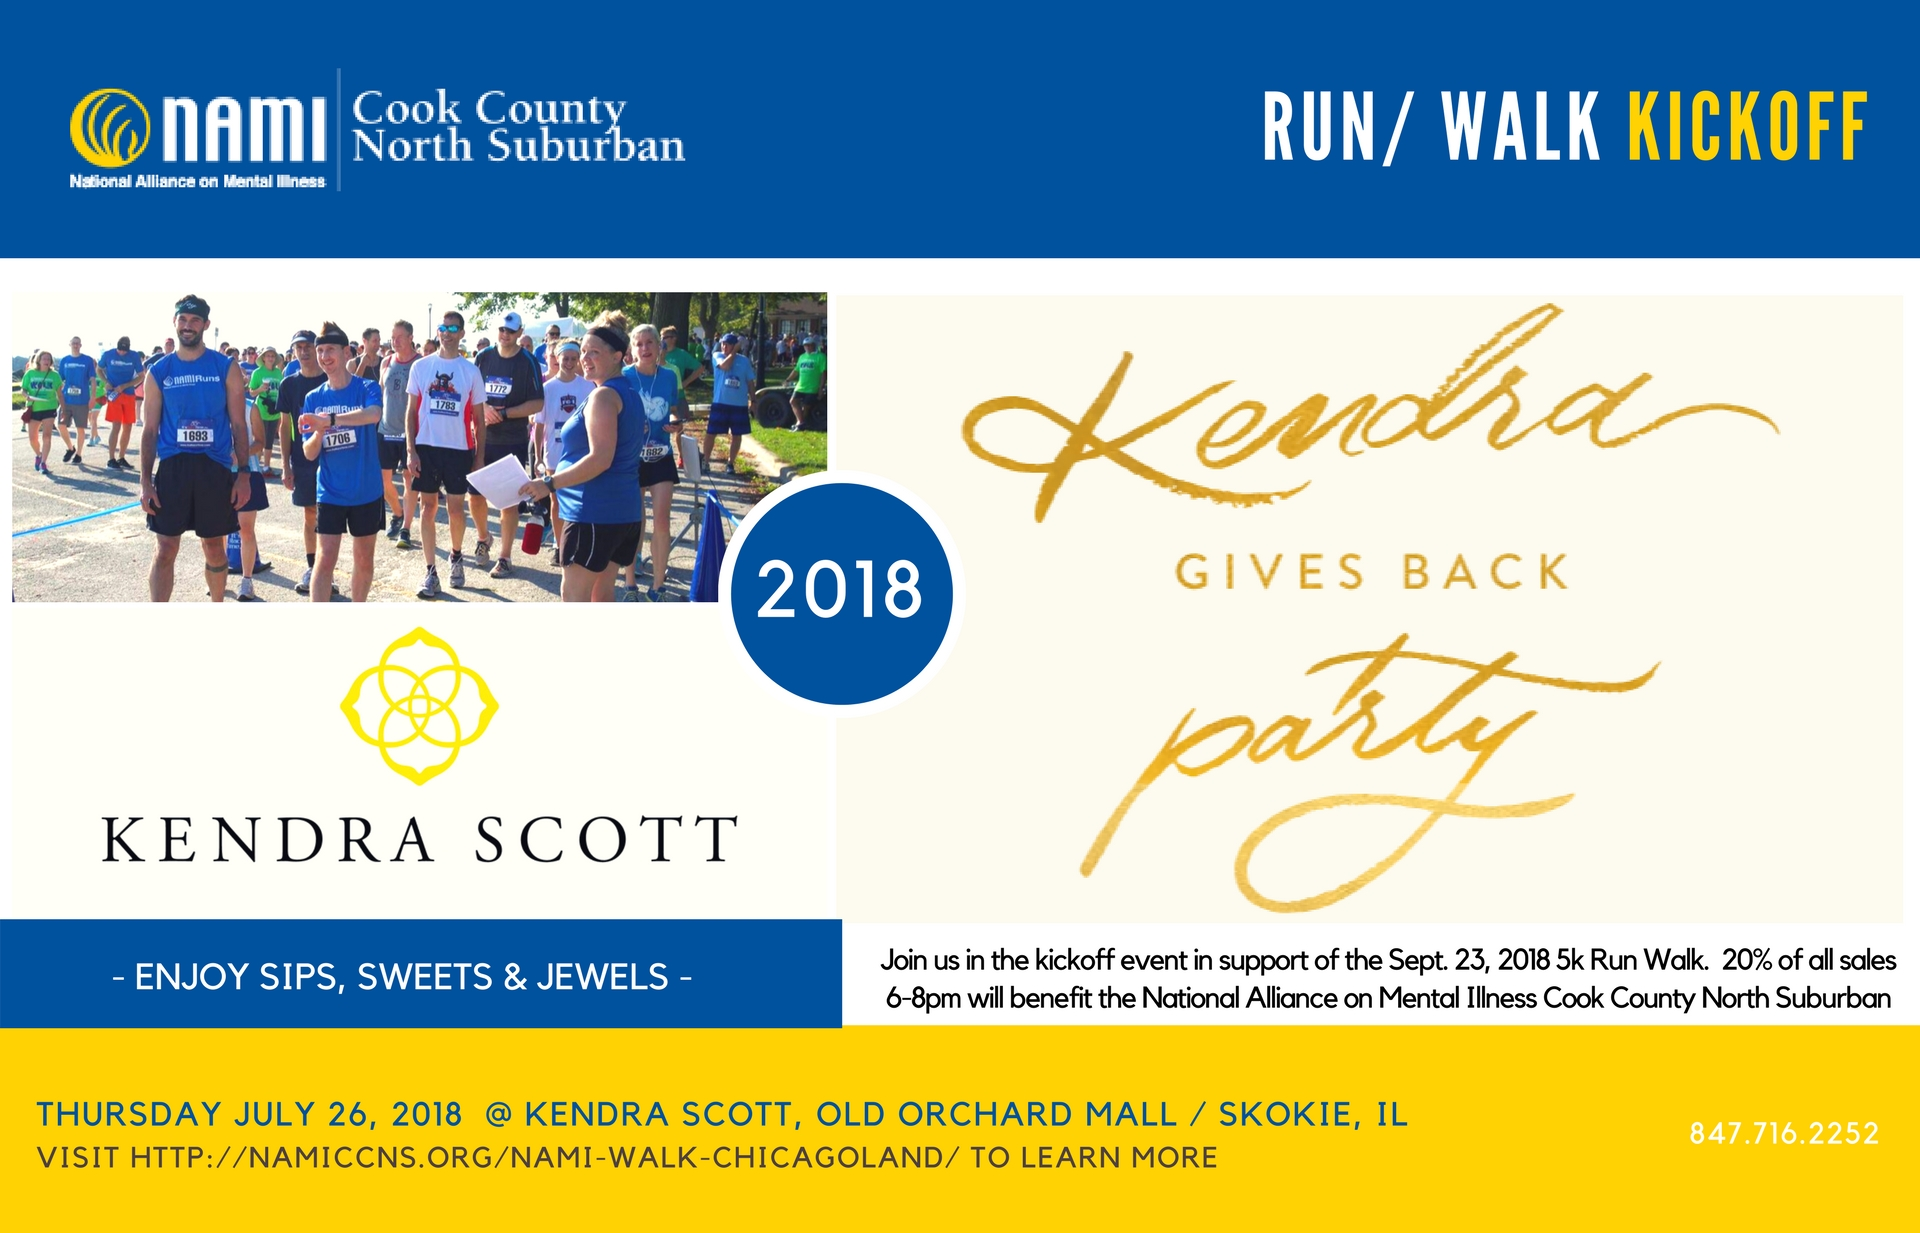 2018 NAMI CCNS RUN/WALK KICKOFF EVENT AT KENDRA SCOTT IN THE OLD ORCHARD MALL!